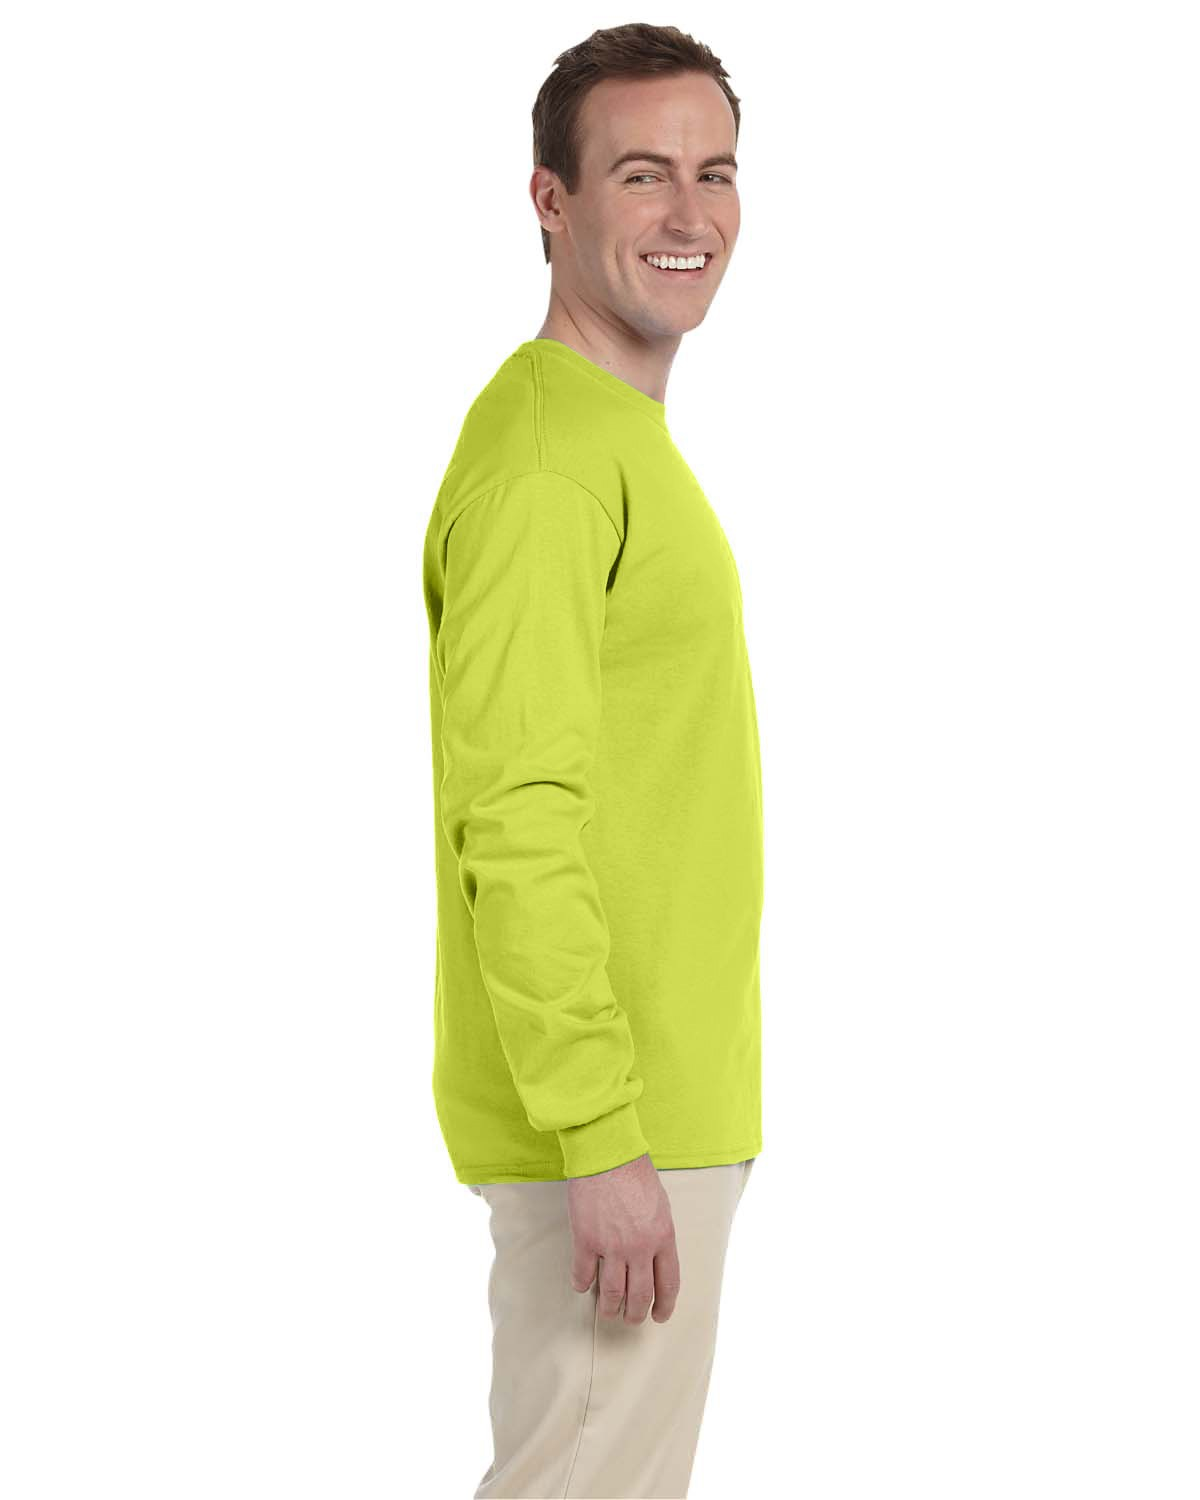 4930 Fruit of the Loom SAFETY GREEN